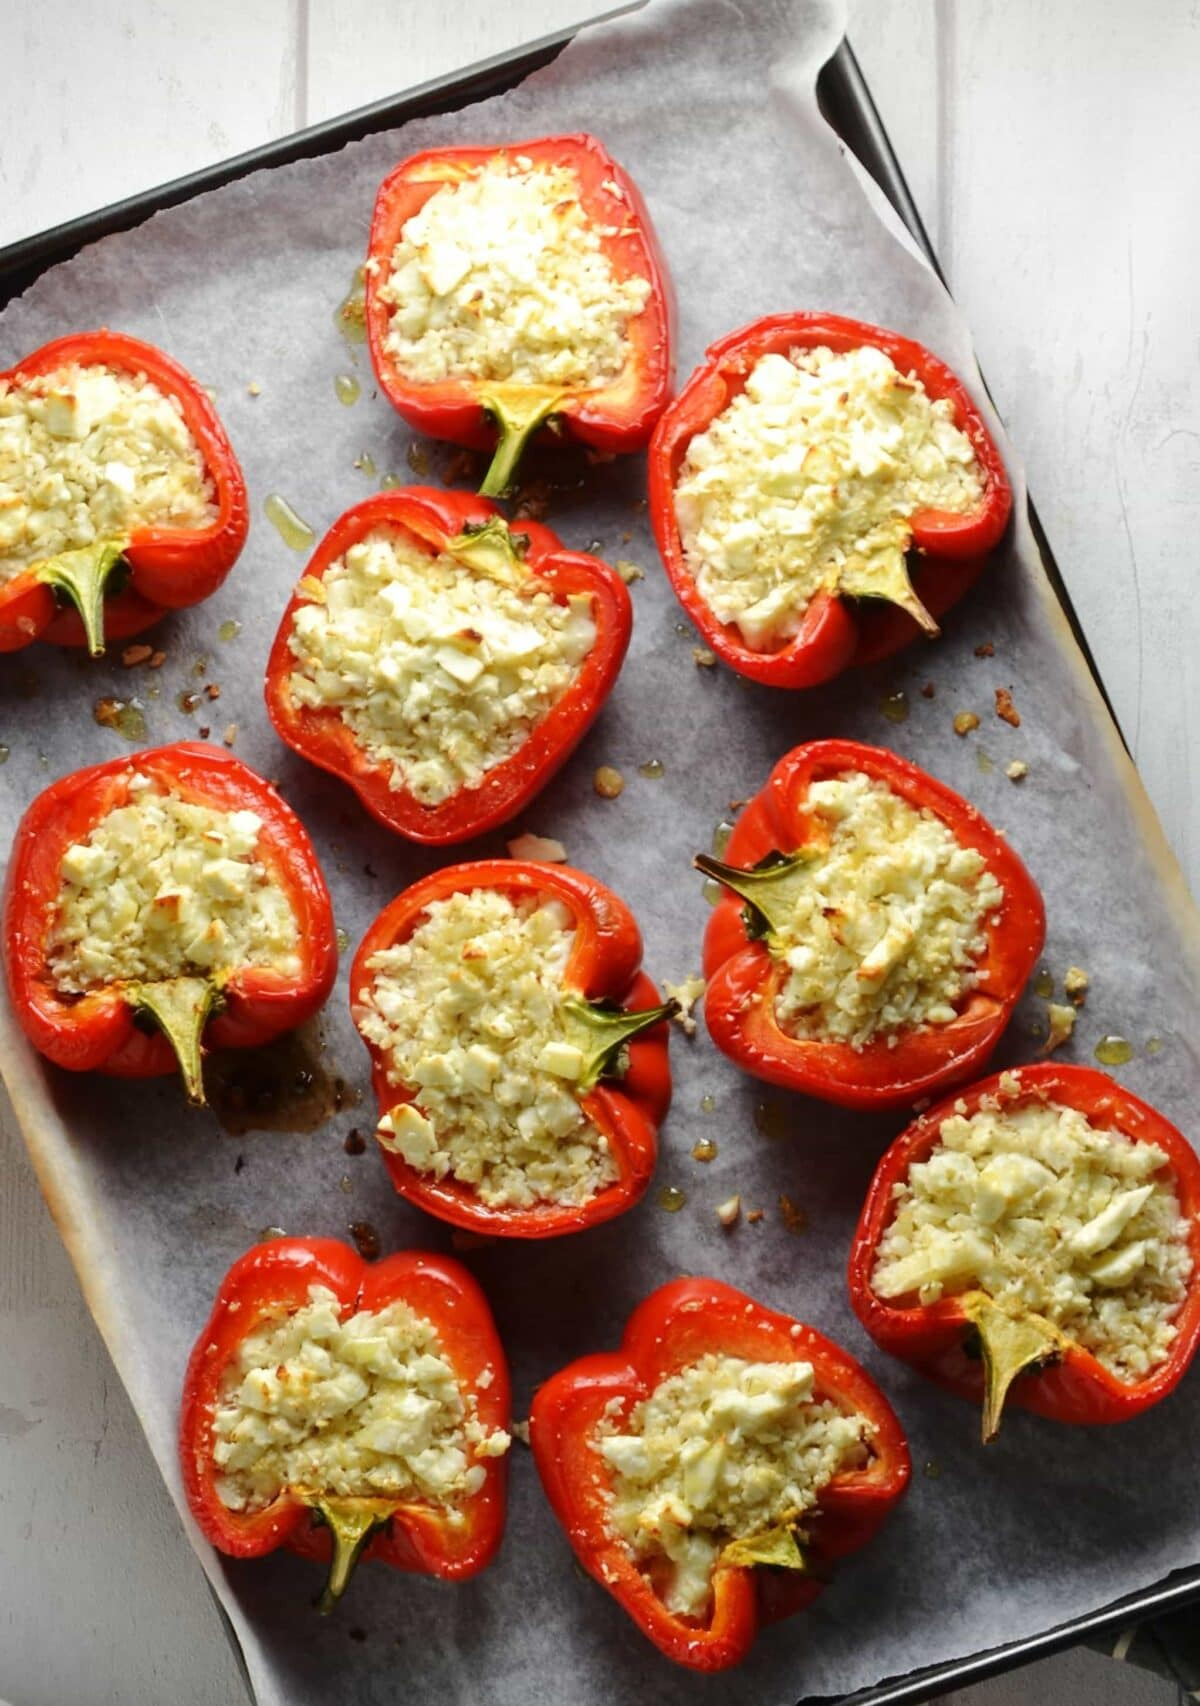 Cauliflower rice stuffed red peppers on baking tray lined with non-stick paper.